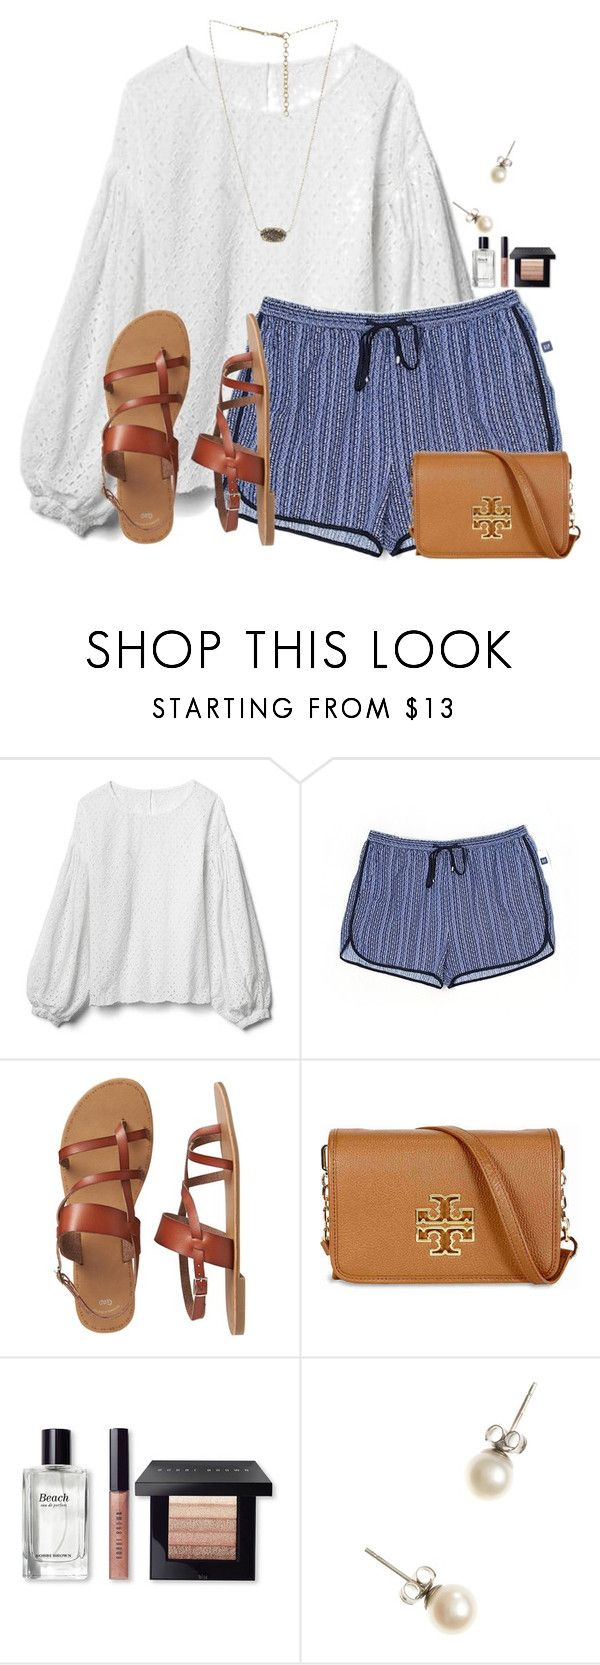 """""""ONLY 1 MORE FOLLOWER!! WHO WILL IT BE?"""" by flroasburn on Polyvore featuring Gap, Tory Burch, Bobbi Brown Cosmetics, J.Crew and Kendra Scott"""